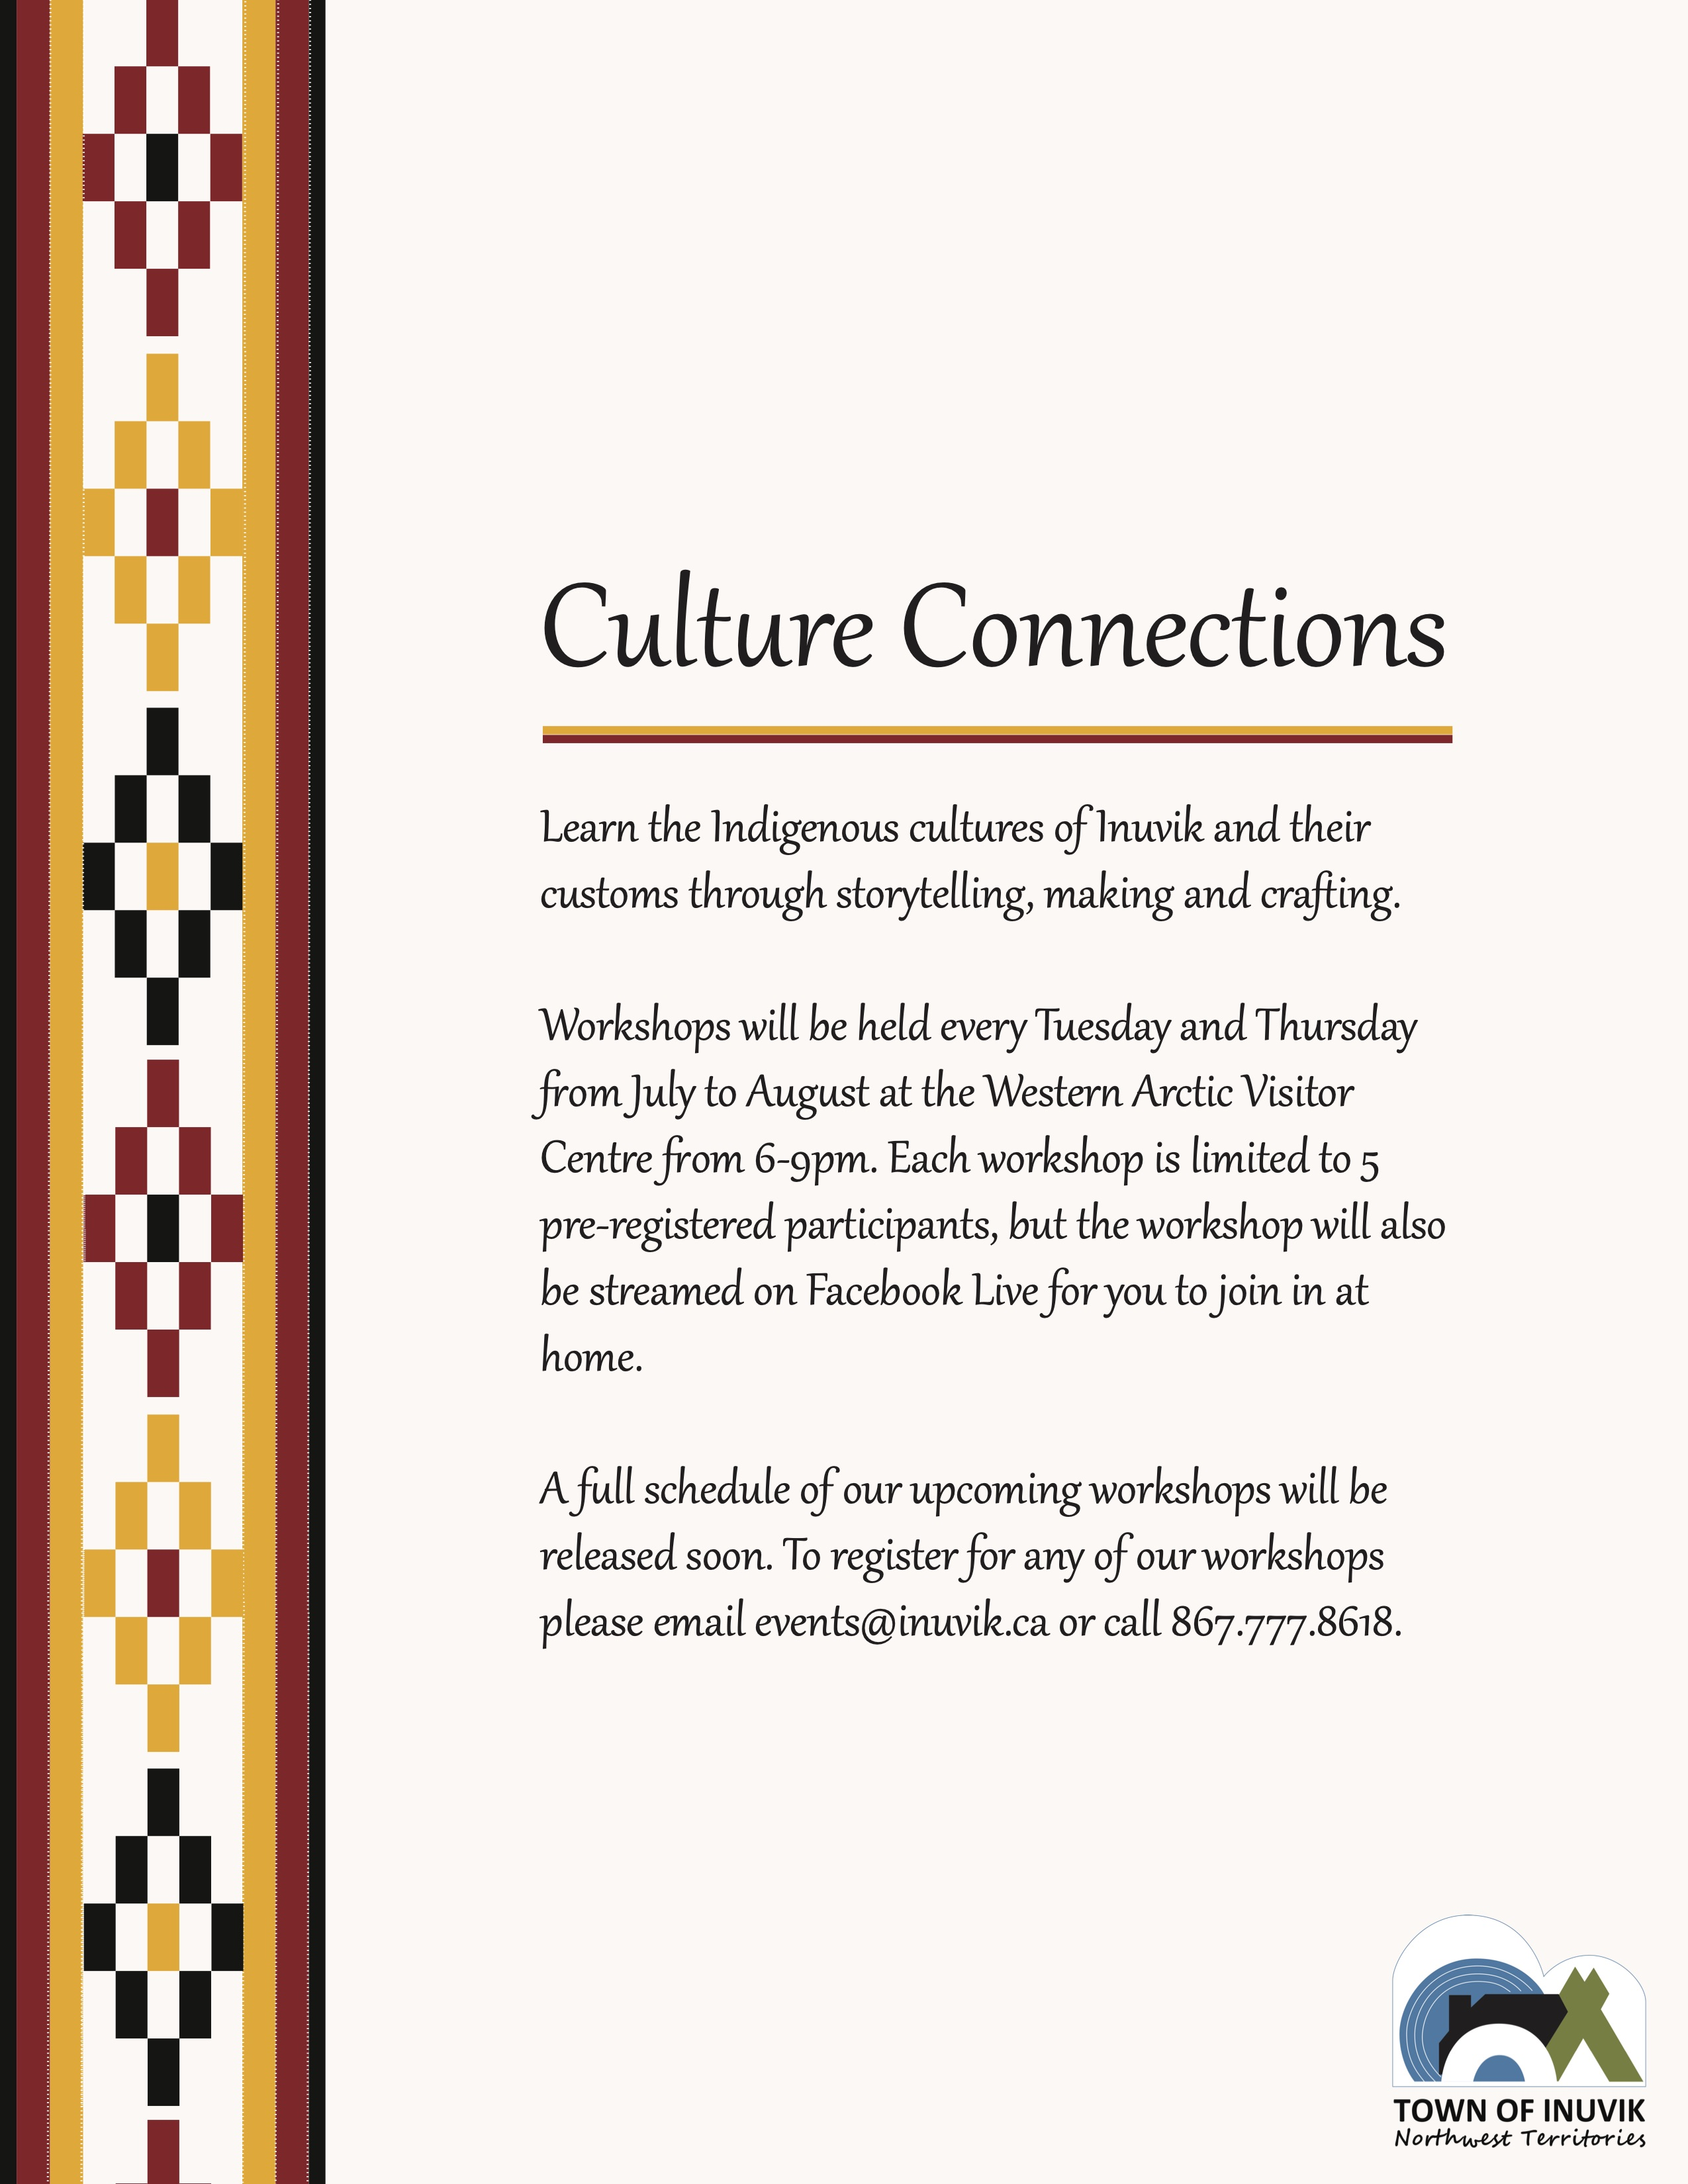 Culture Connections Poster